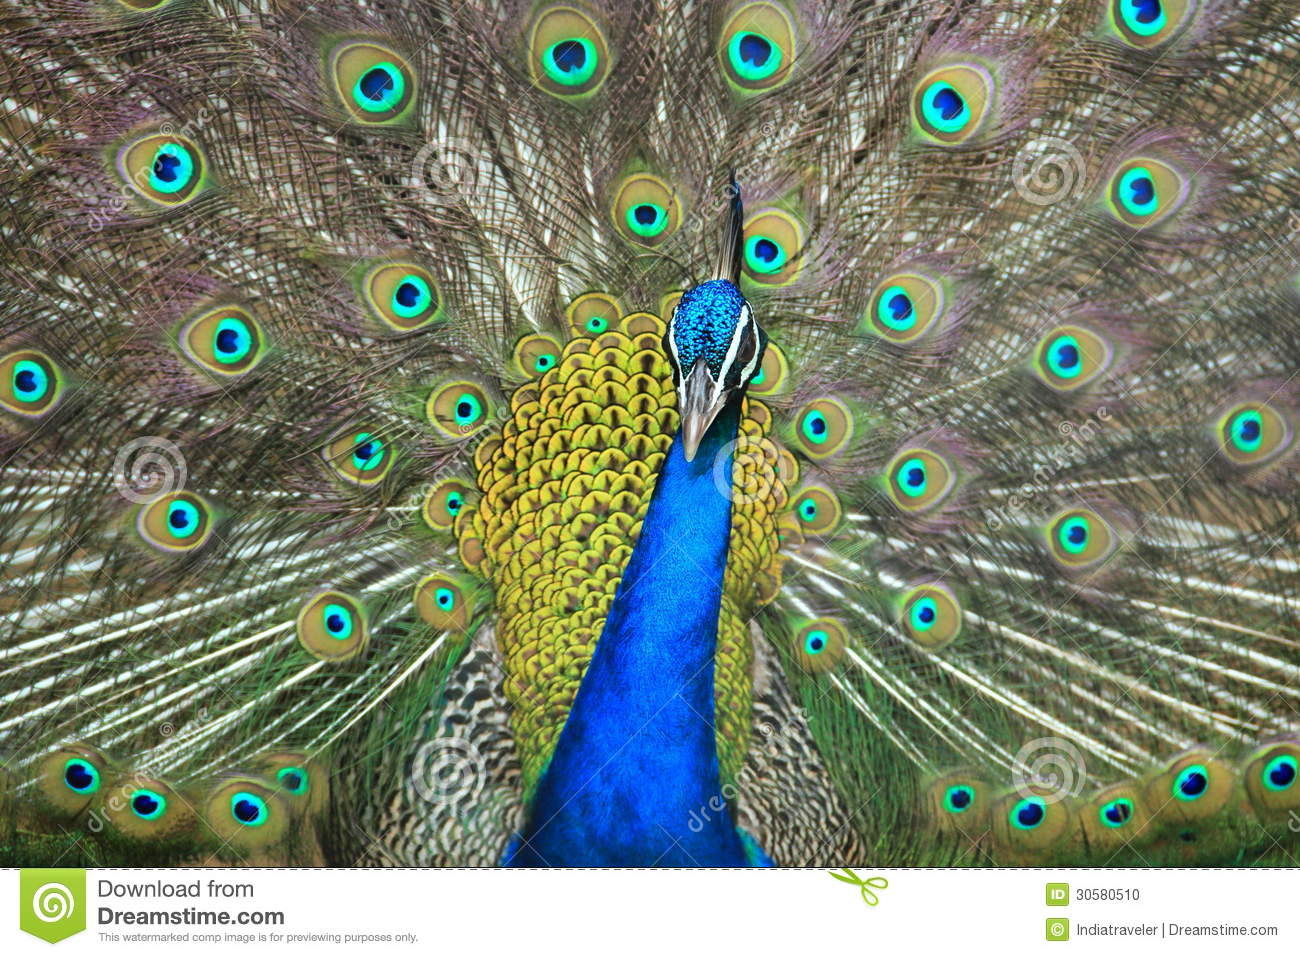 Peacock Displaying Its Feathers. Stock Photo.